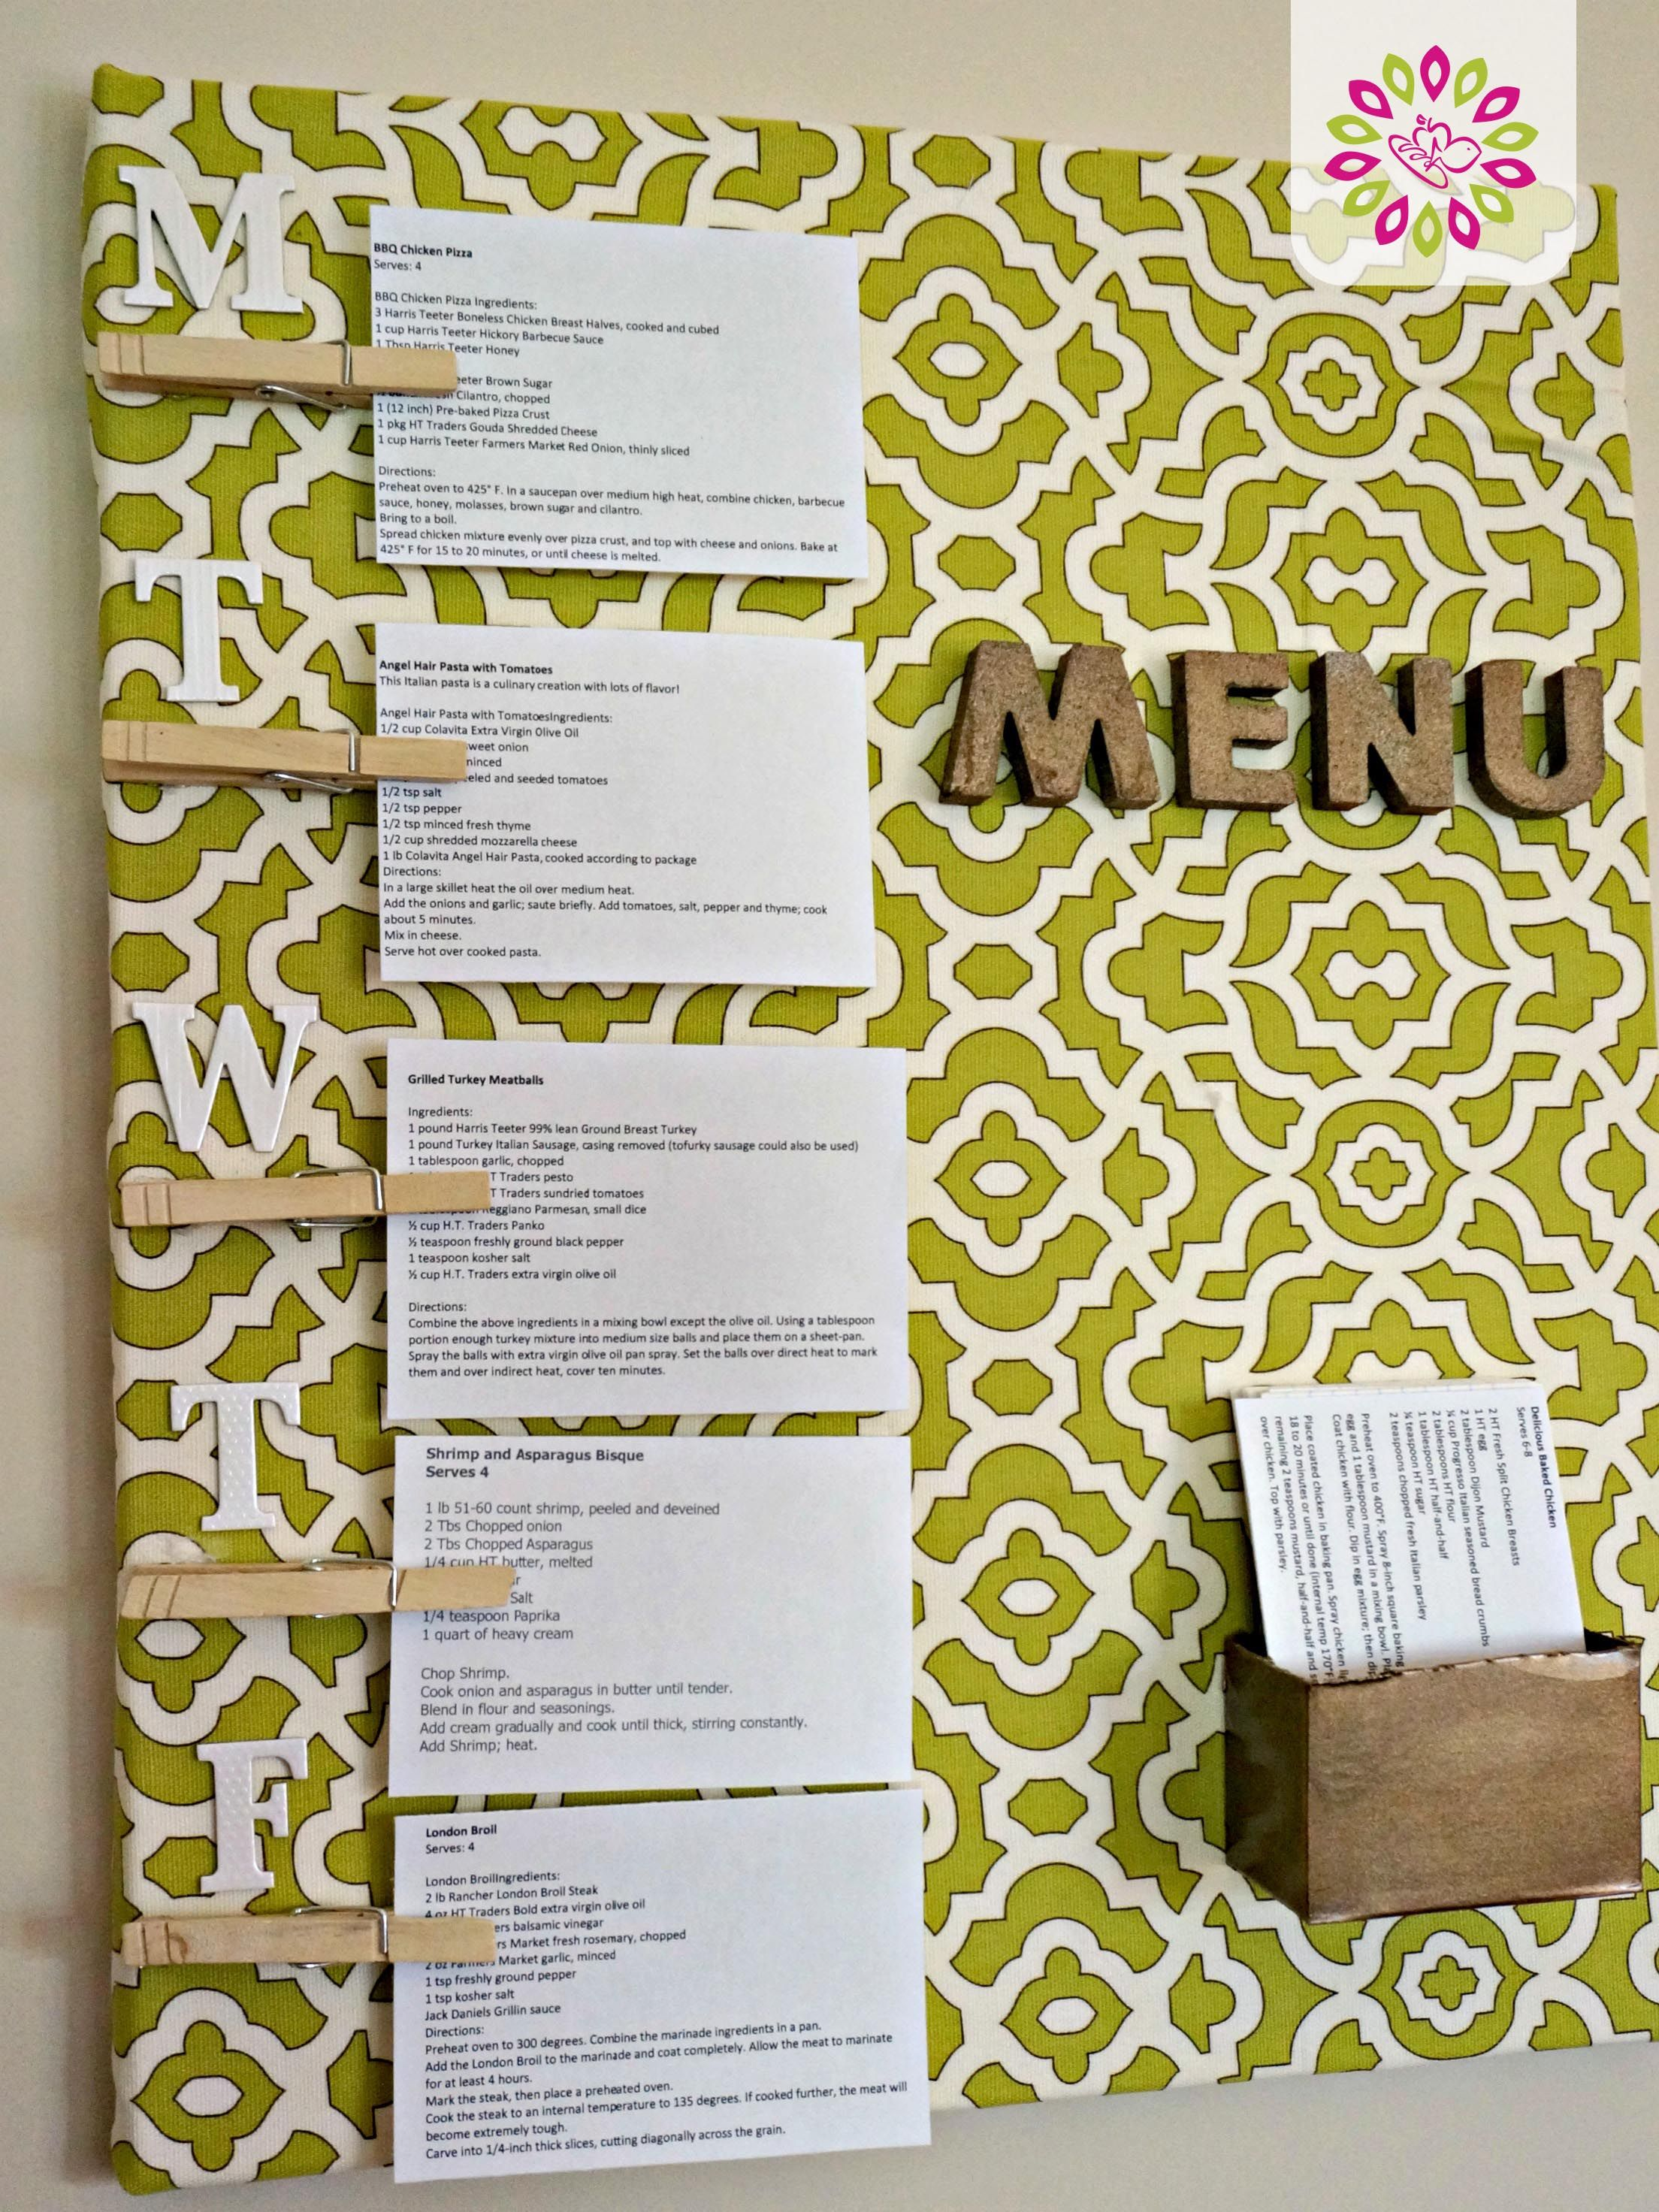 Mail Organizer Plans Meal Plan Organizer Need A One Stop Place To Organize Your Meals